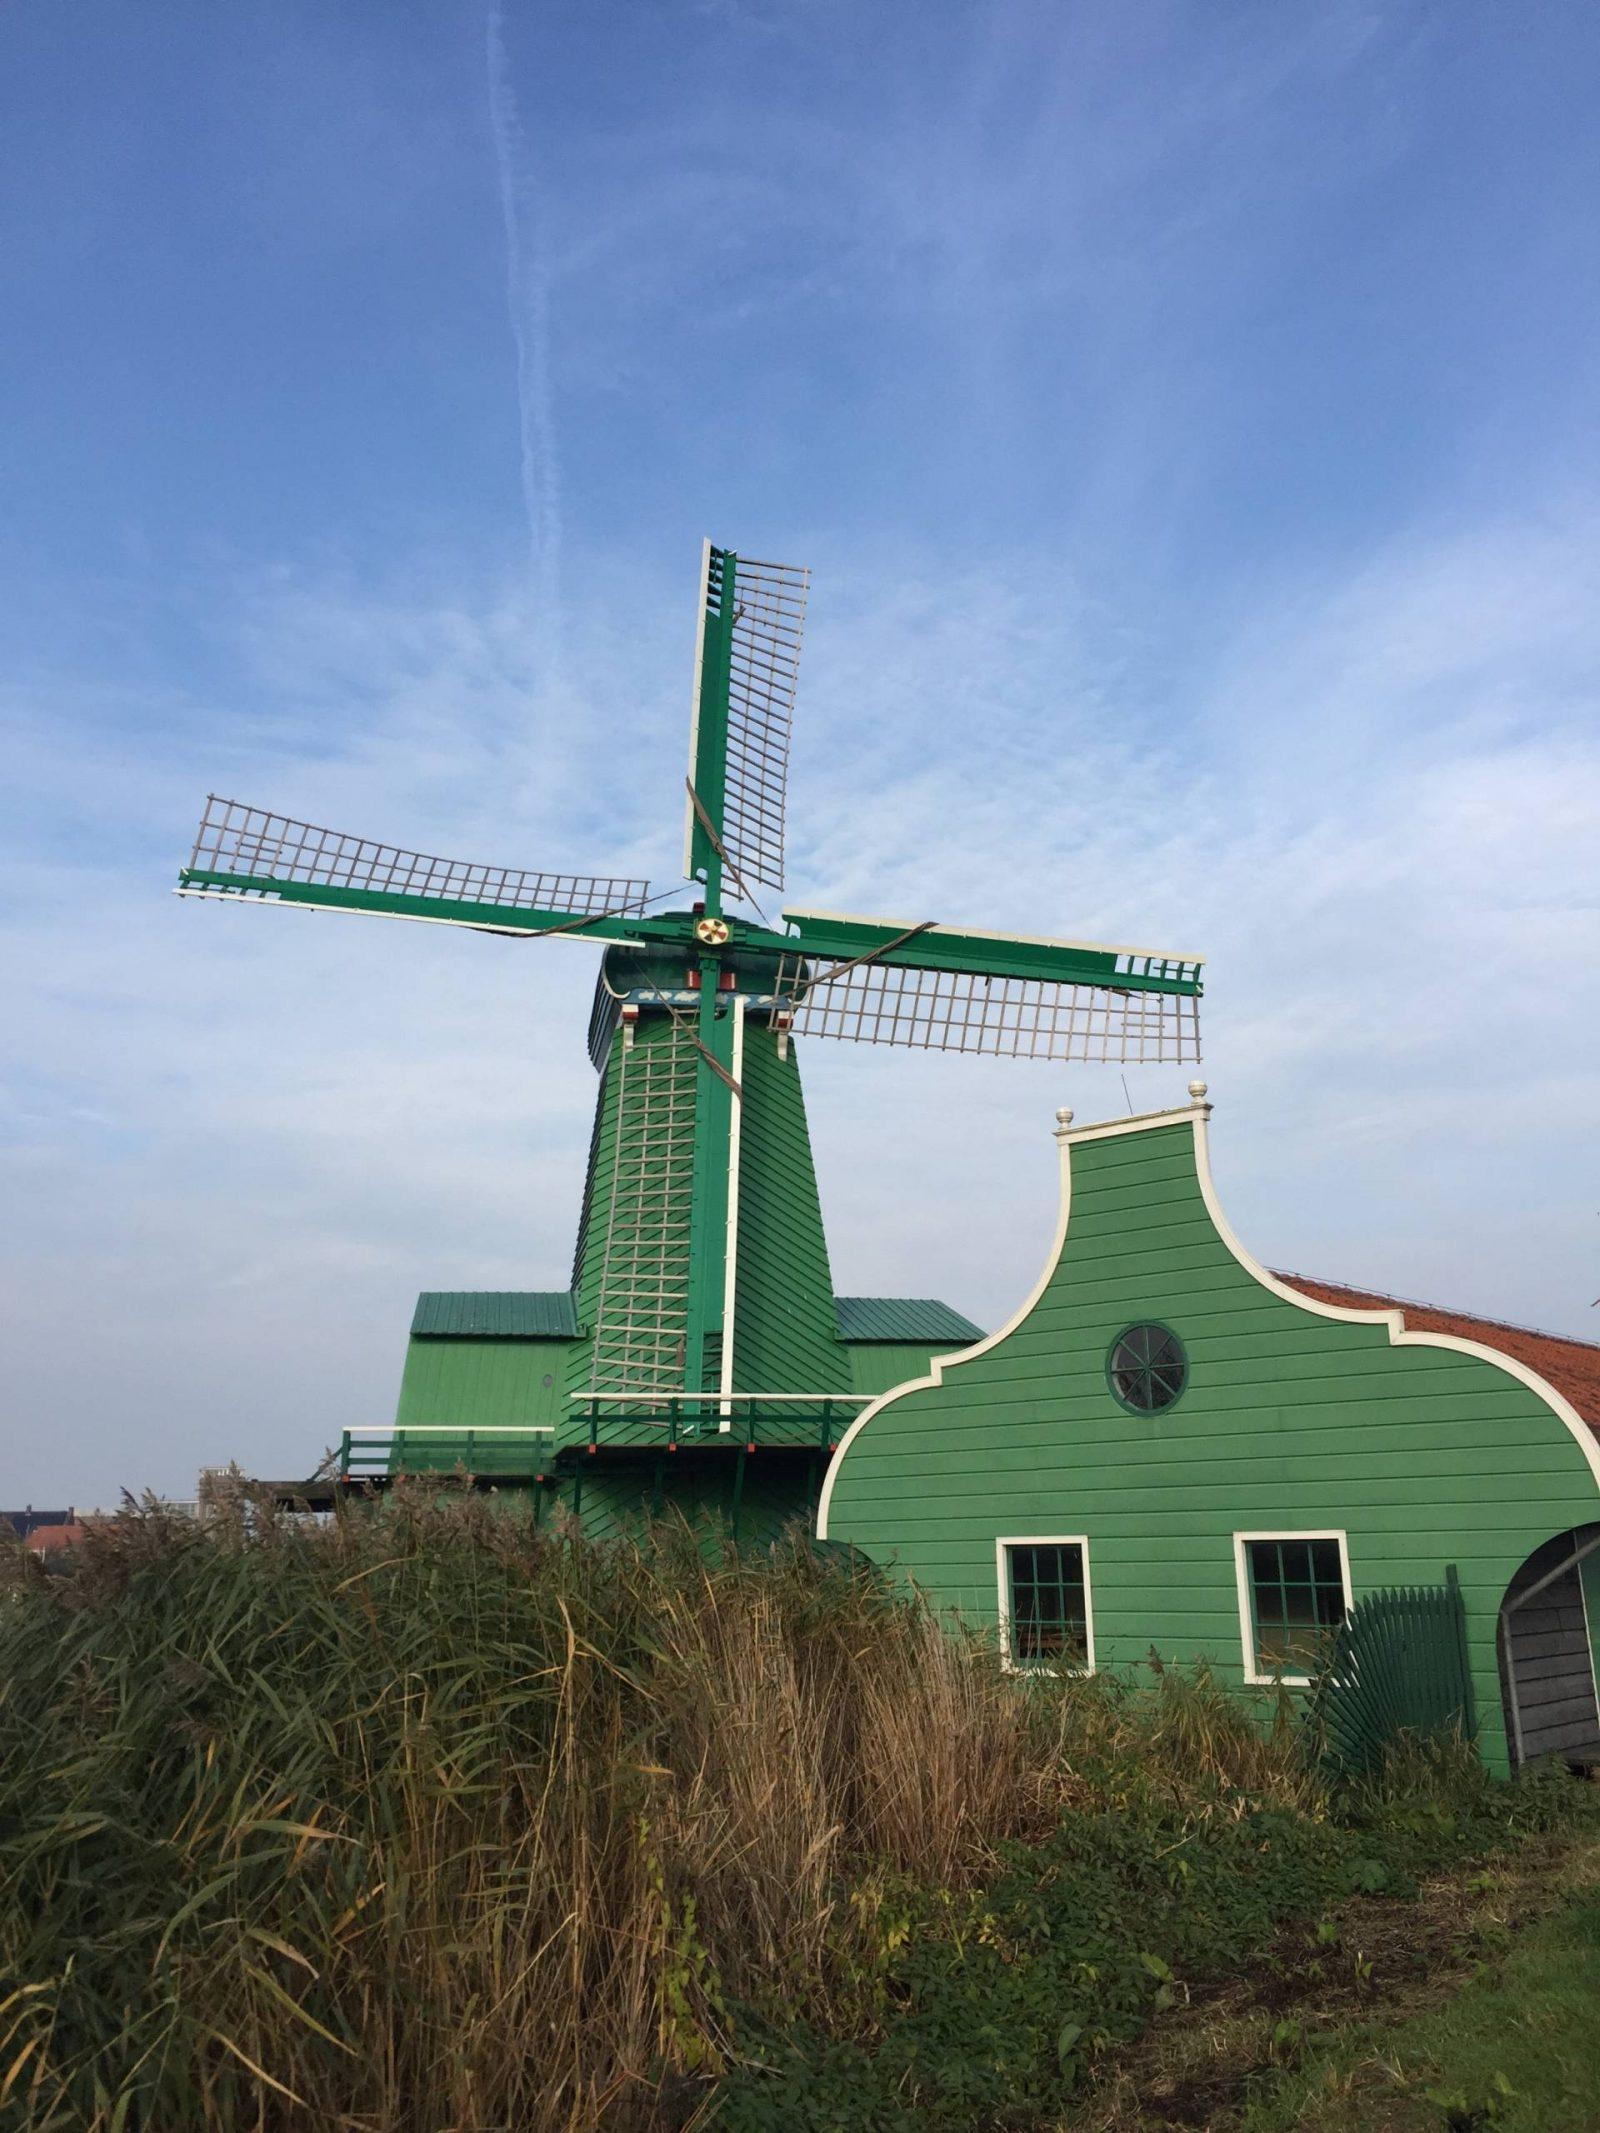 Chasing Windmills in the Netherlands: Day Trip to Zaanse Schans